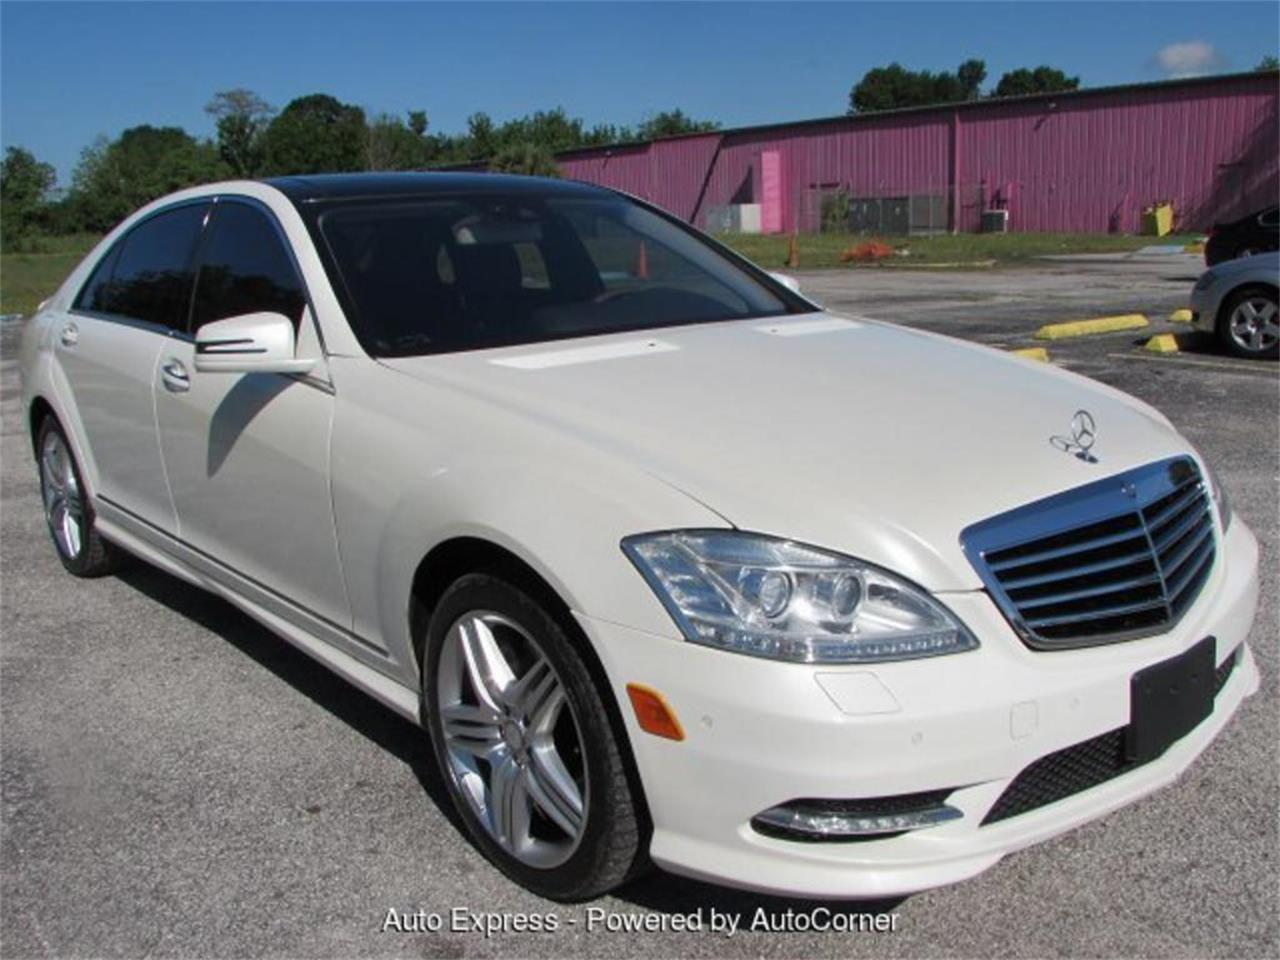 2013 Mercedes-Benz S-Class (CC-1216024) for sale in Orlando, Florida